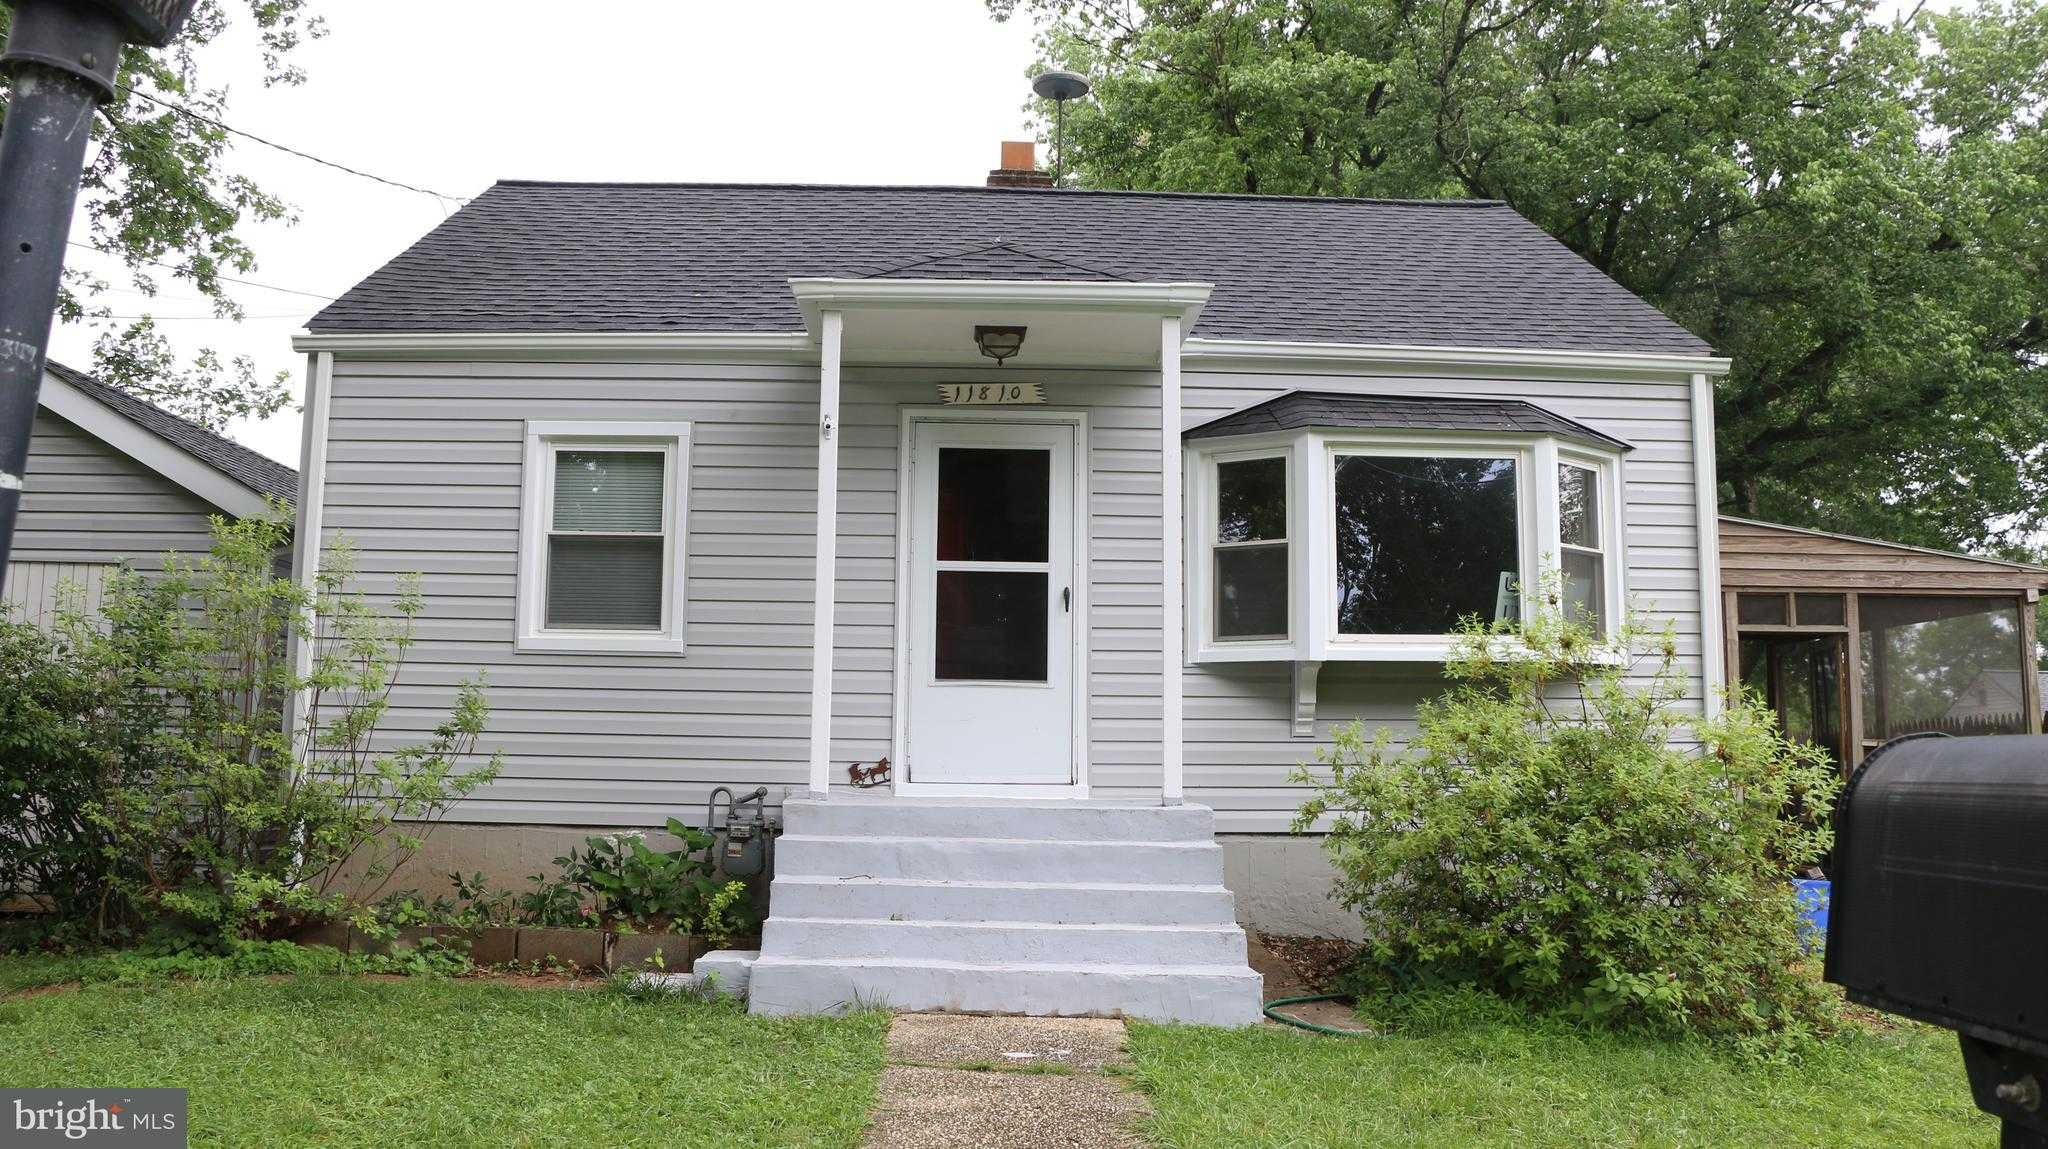 $342,000  3Br2Ba  For Sale In Veirs Mill Village,